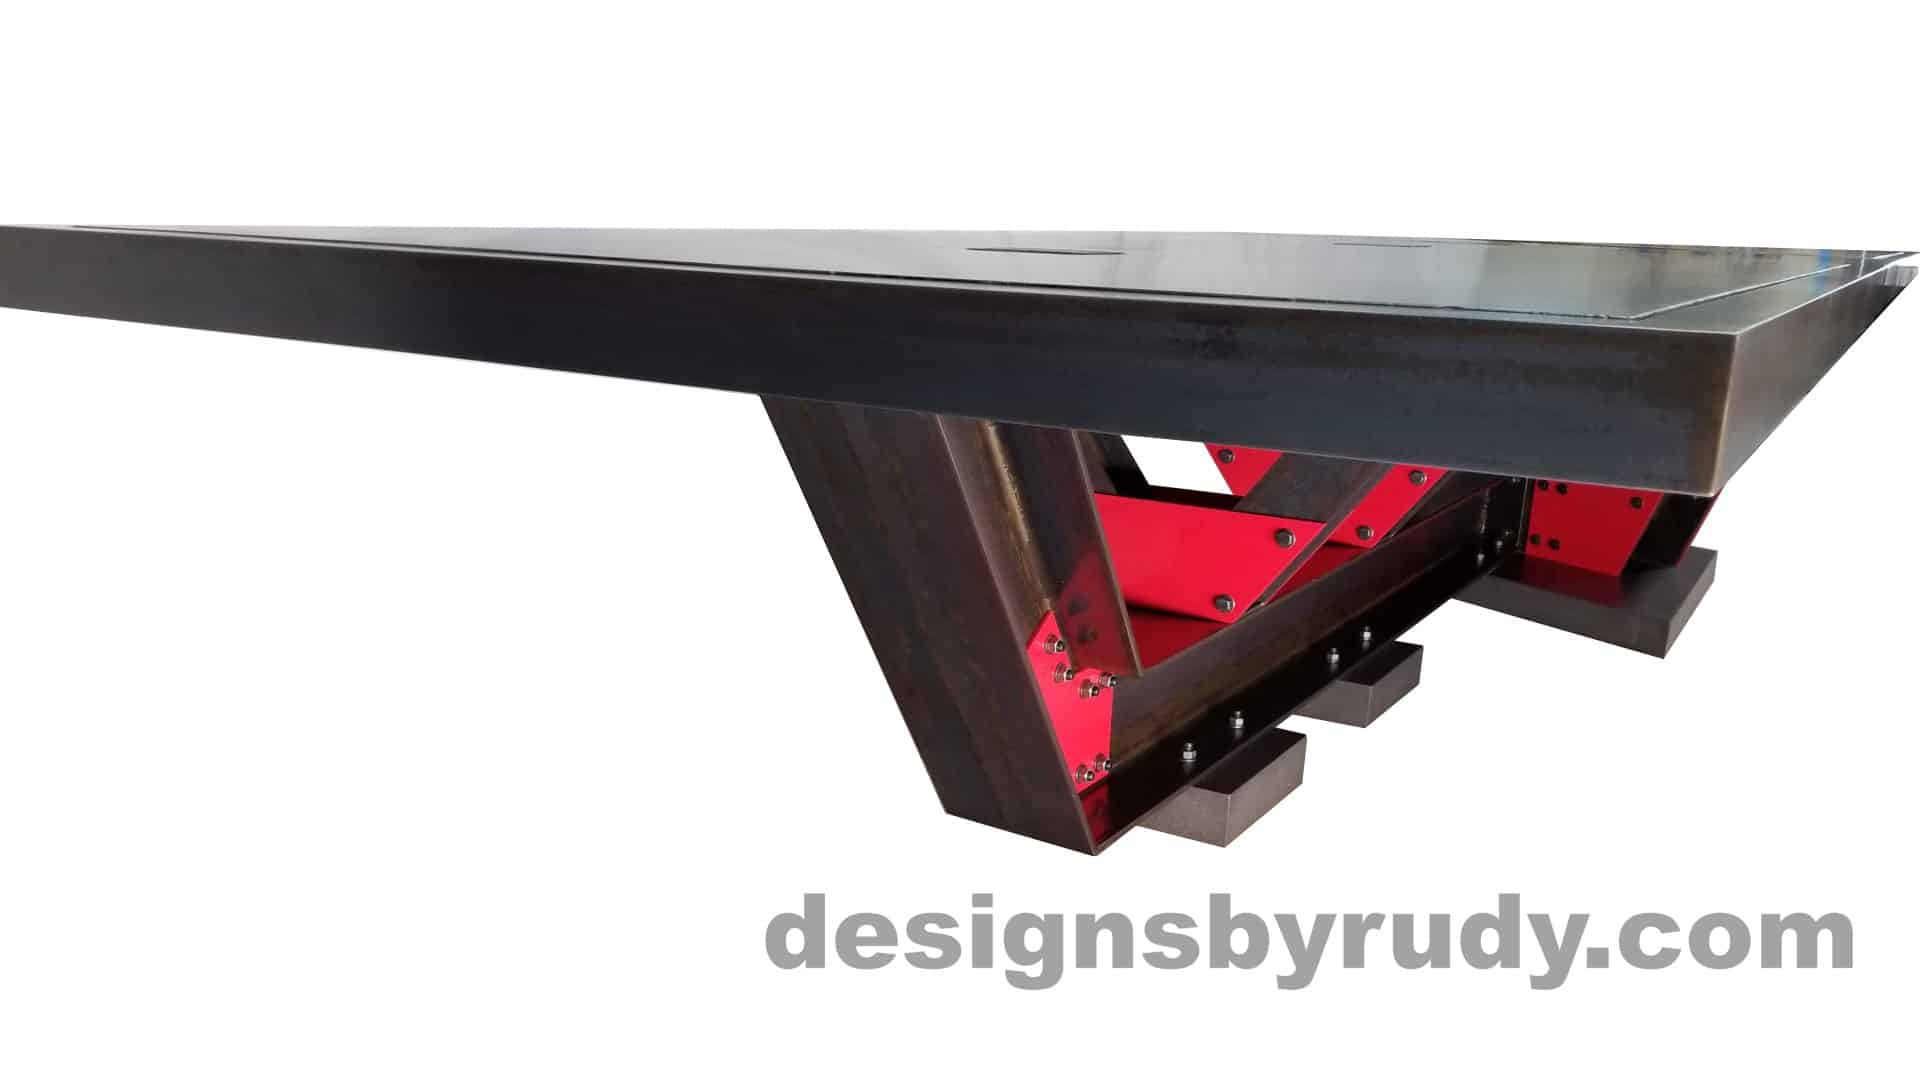 17 Steel and concrete conference table, design and fabrication by Designs by Rudy, base and narrow edge view